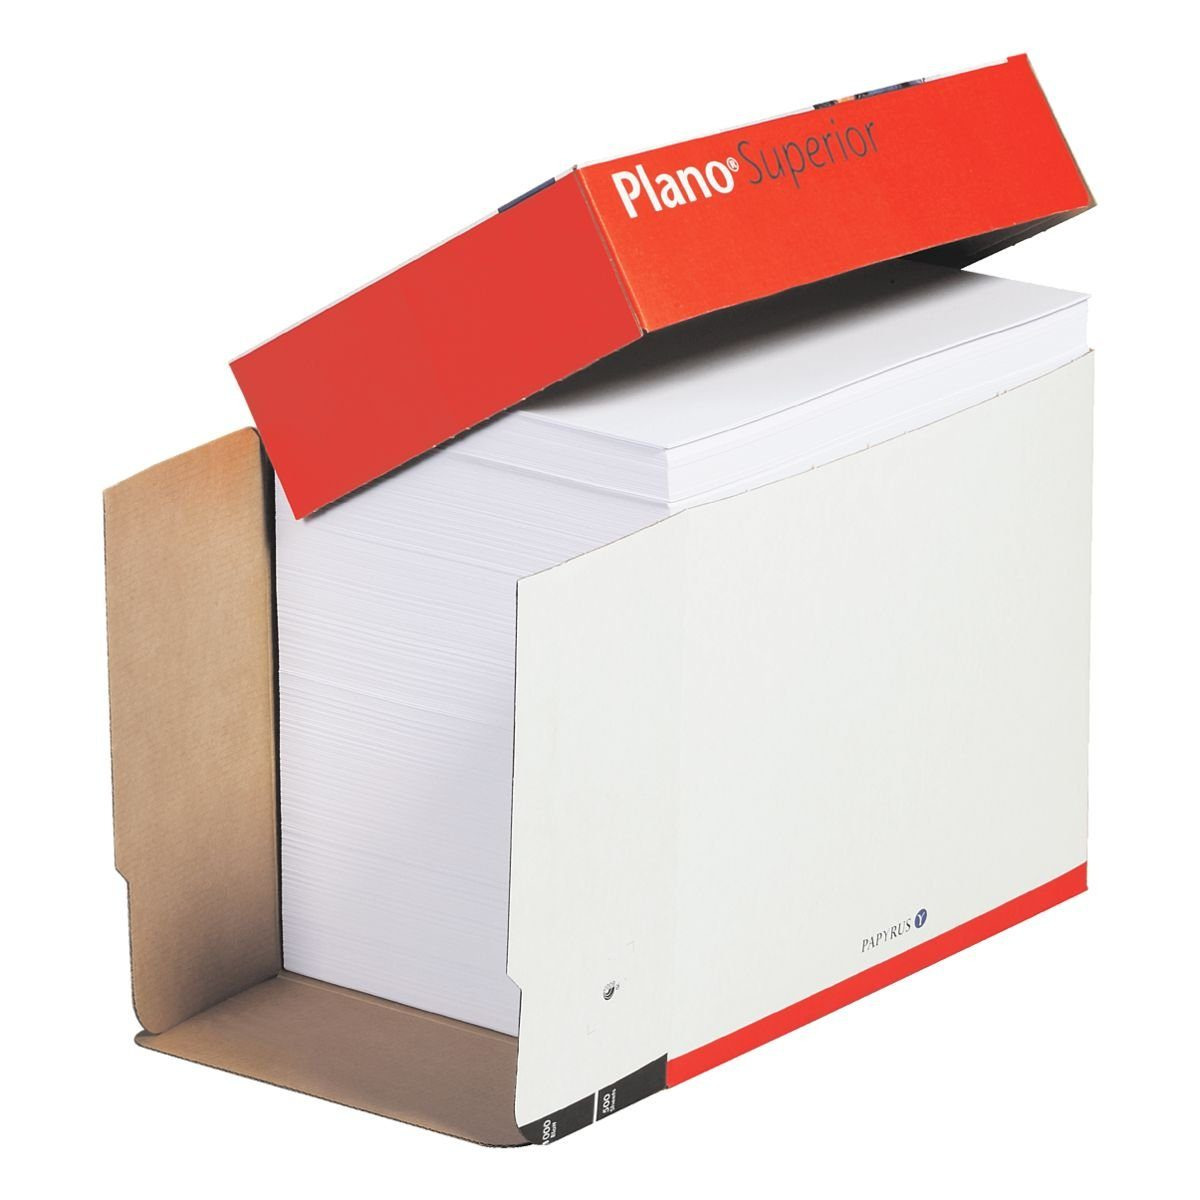 Plano Öko-Box Multifunktionales Druckerpapier »Superior...